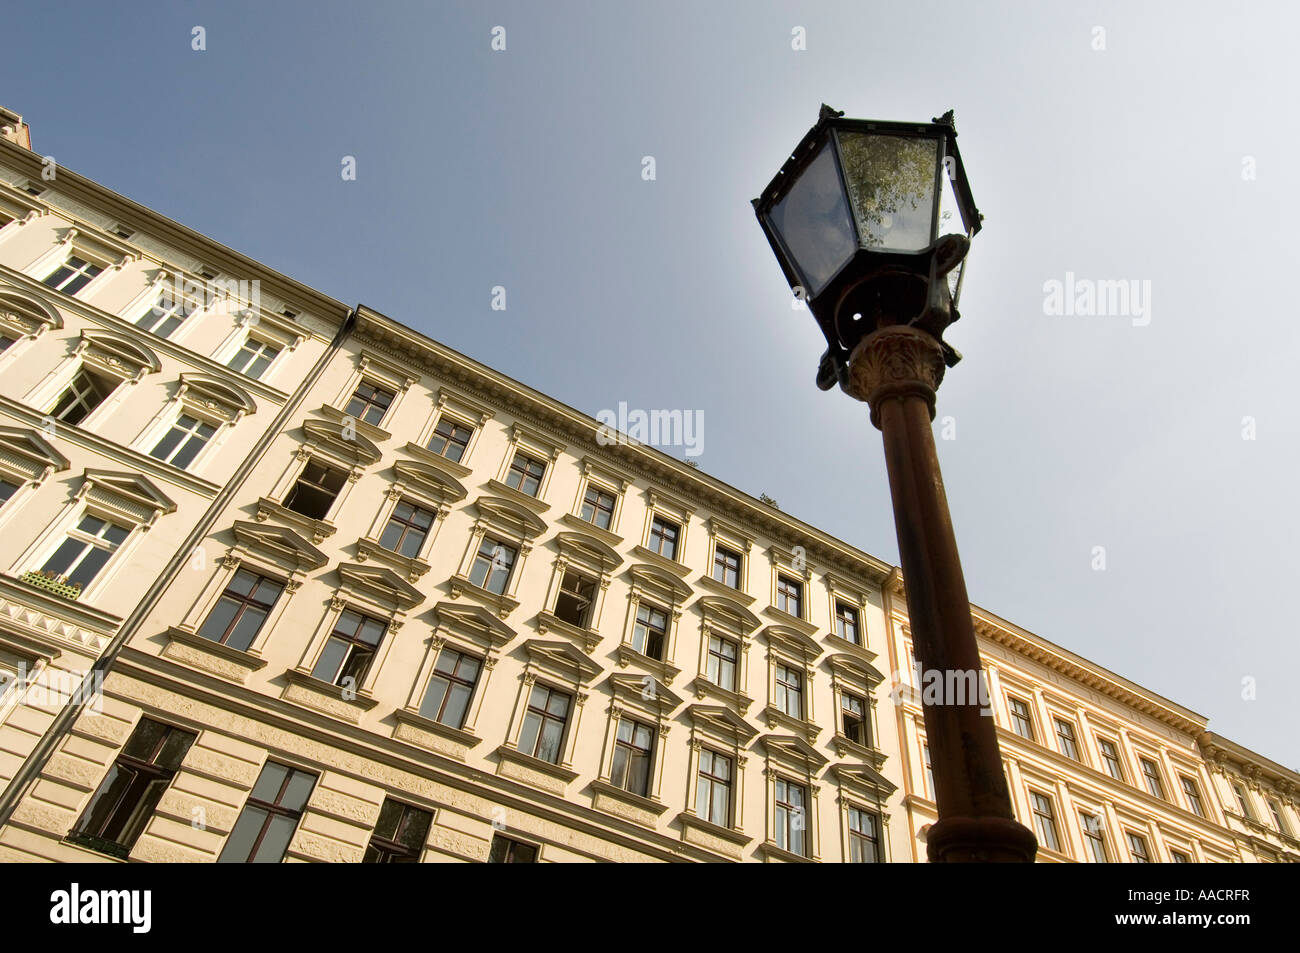 Facades of old buildings, Kreuzberg, Berlin, Germany - Stock Image